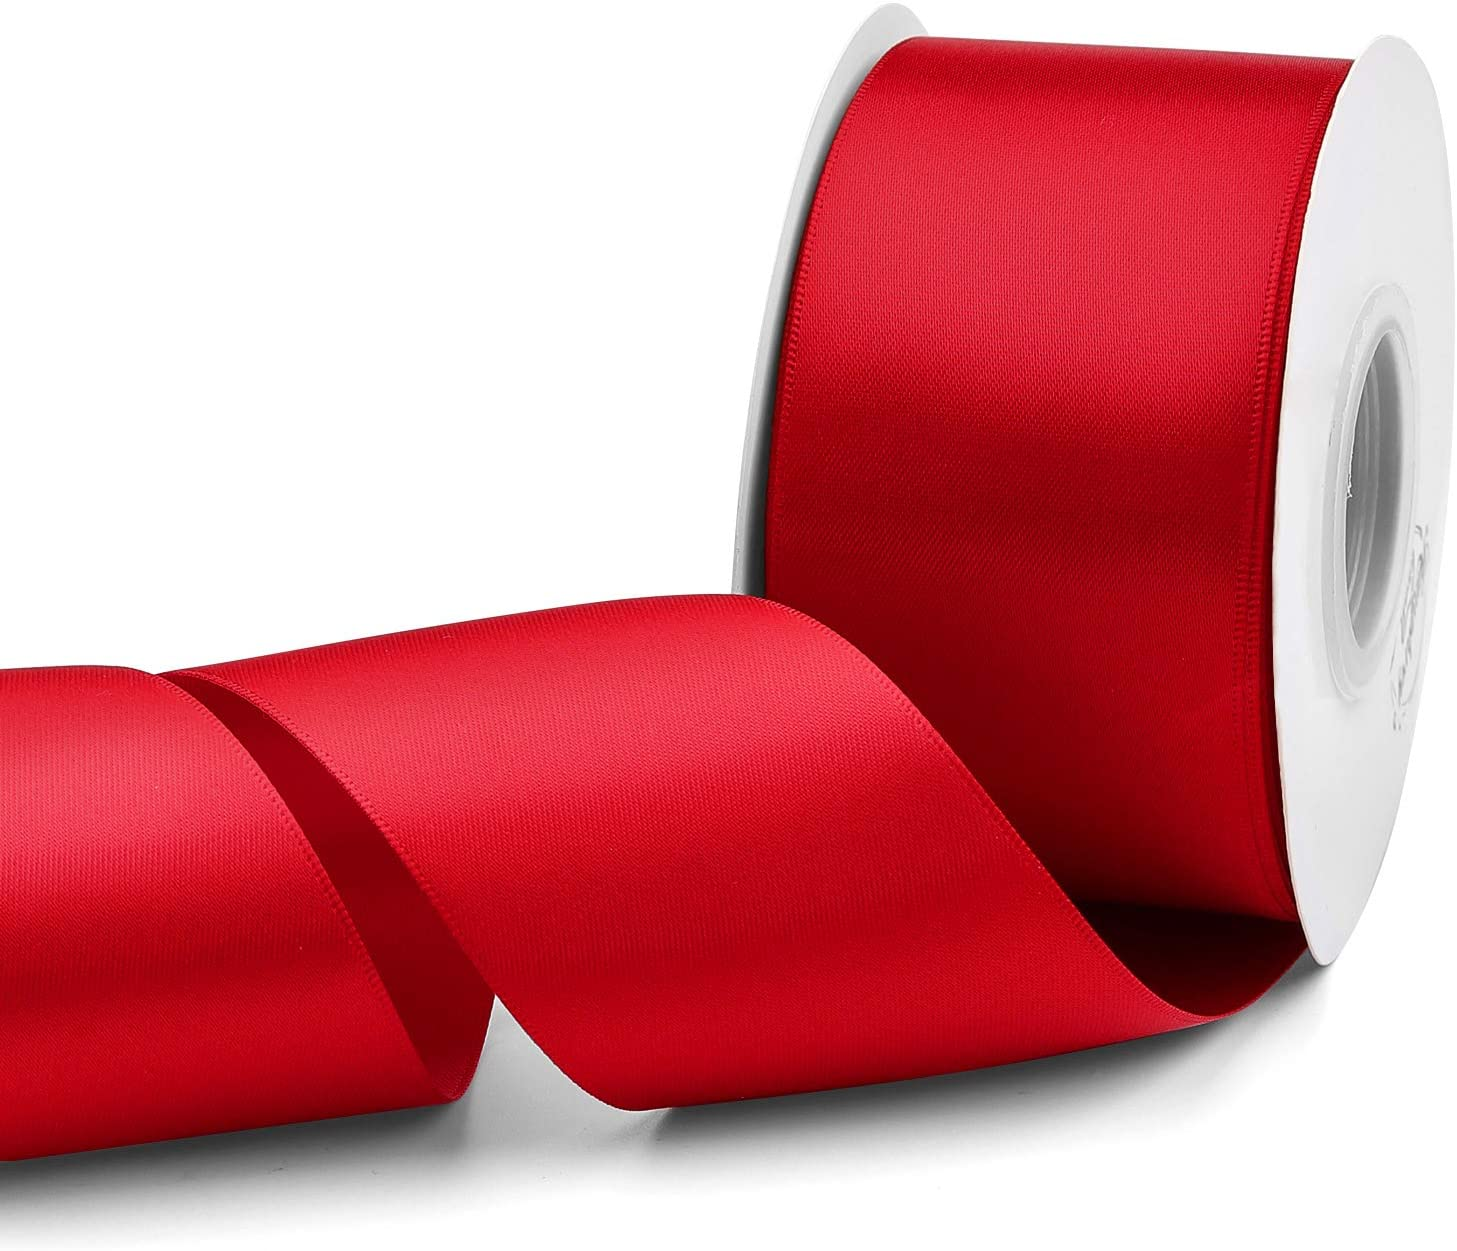 Humphrey's Craft 2 Inch Red Double Faced Satin Ribbon - 25 Yards Variety of Color for Crafts Gift Wrapping DIY Bows Bridal Bouquet Cutting Ceremony Decoration Sewing Christmas Tree Wedding.